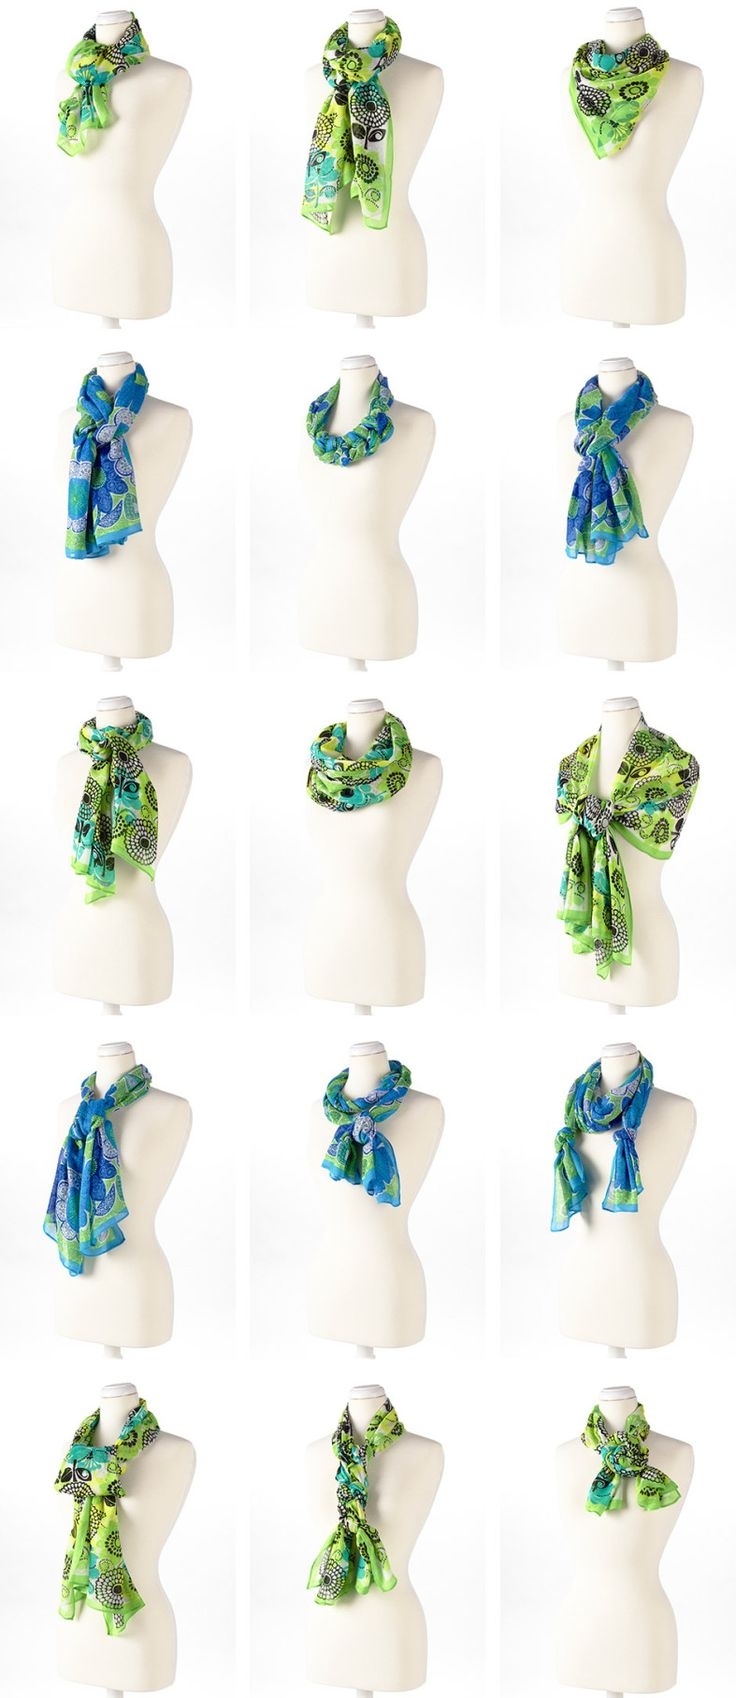 Some great ideas for tying those scarves as the days get colder. #scarves #fall #fashion